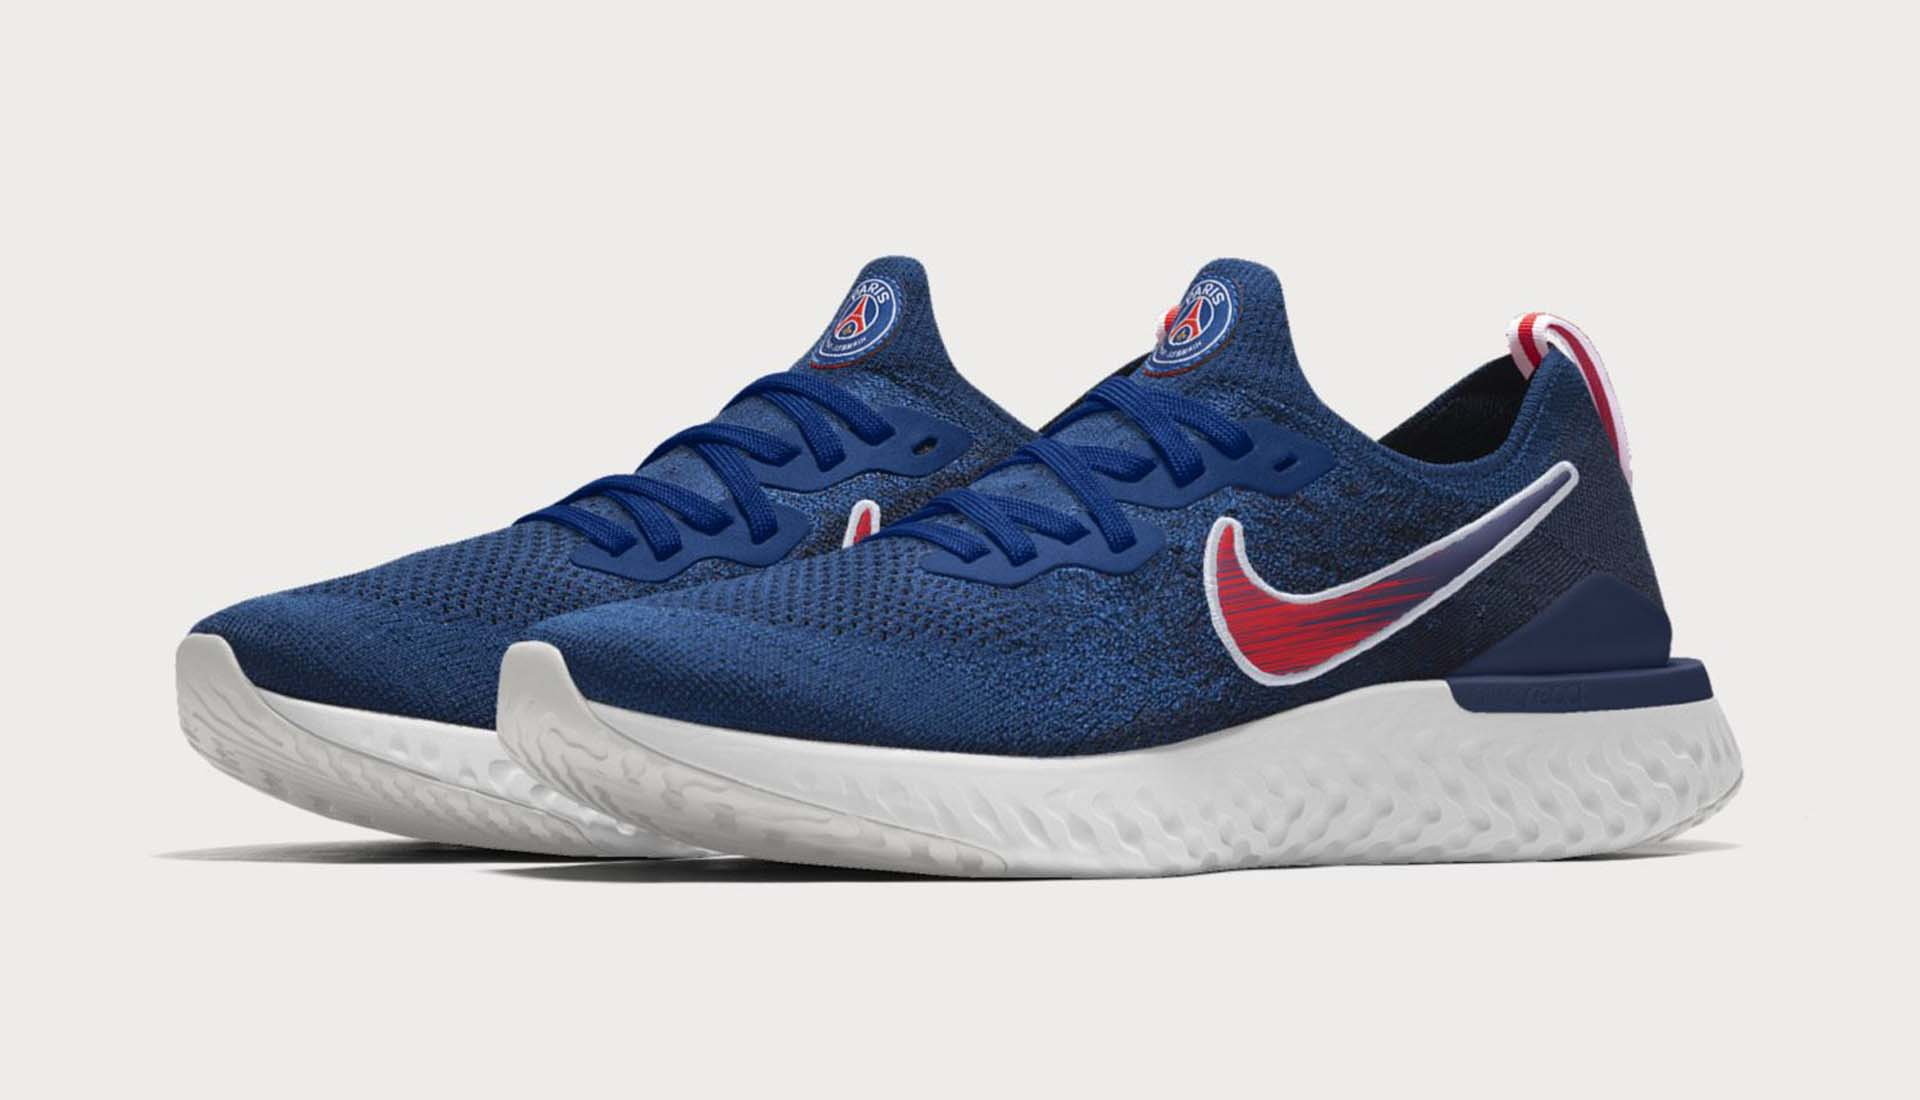 6c81ce4ba49b Nike Launch  Traditional Blue  PSG Epic React Flyknit 2 - SoccerBible